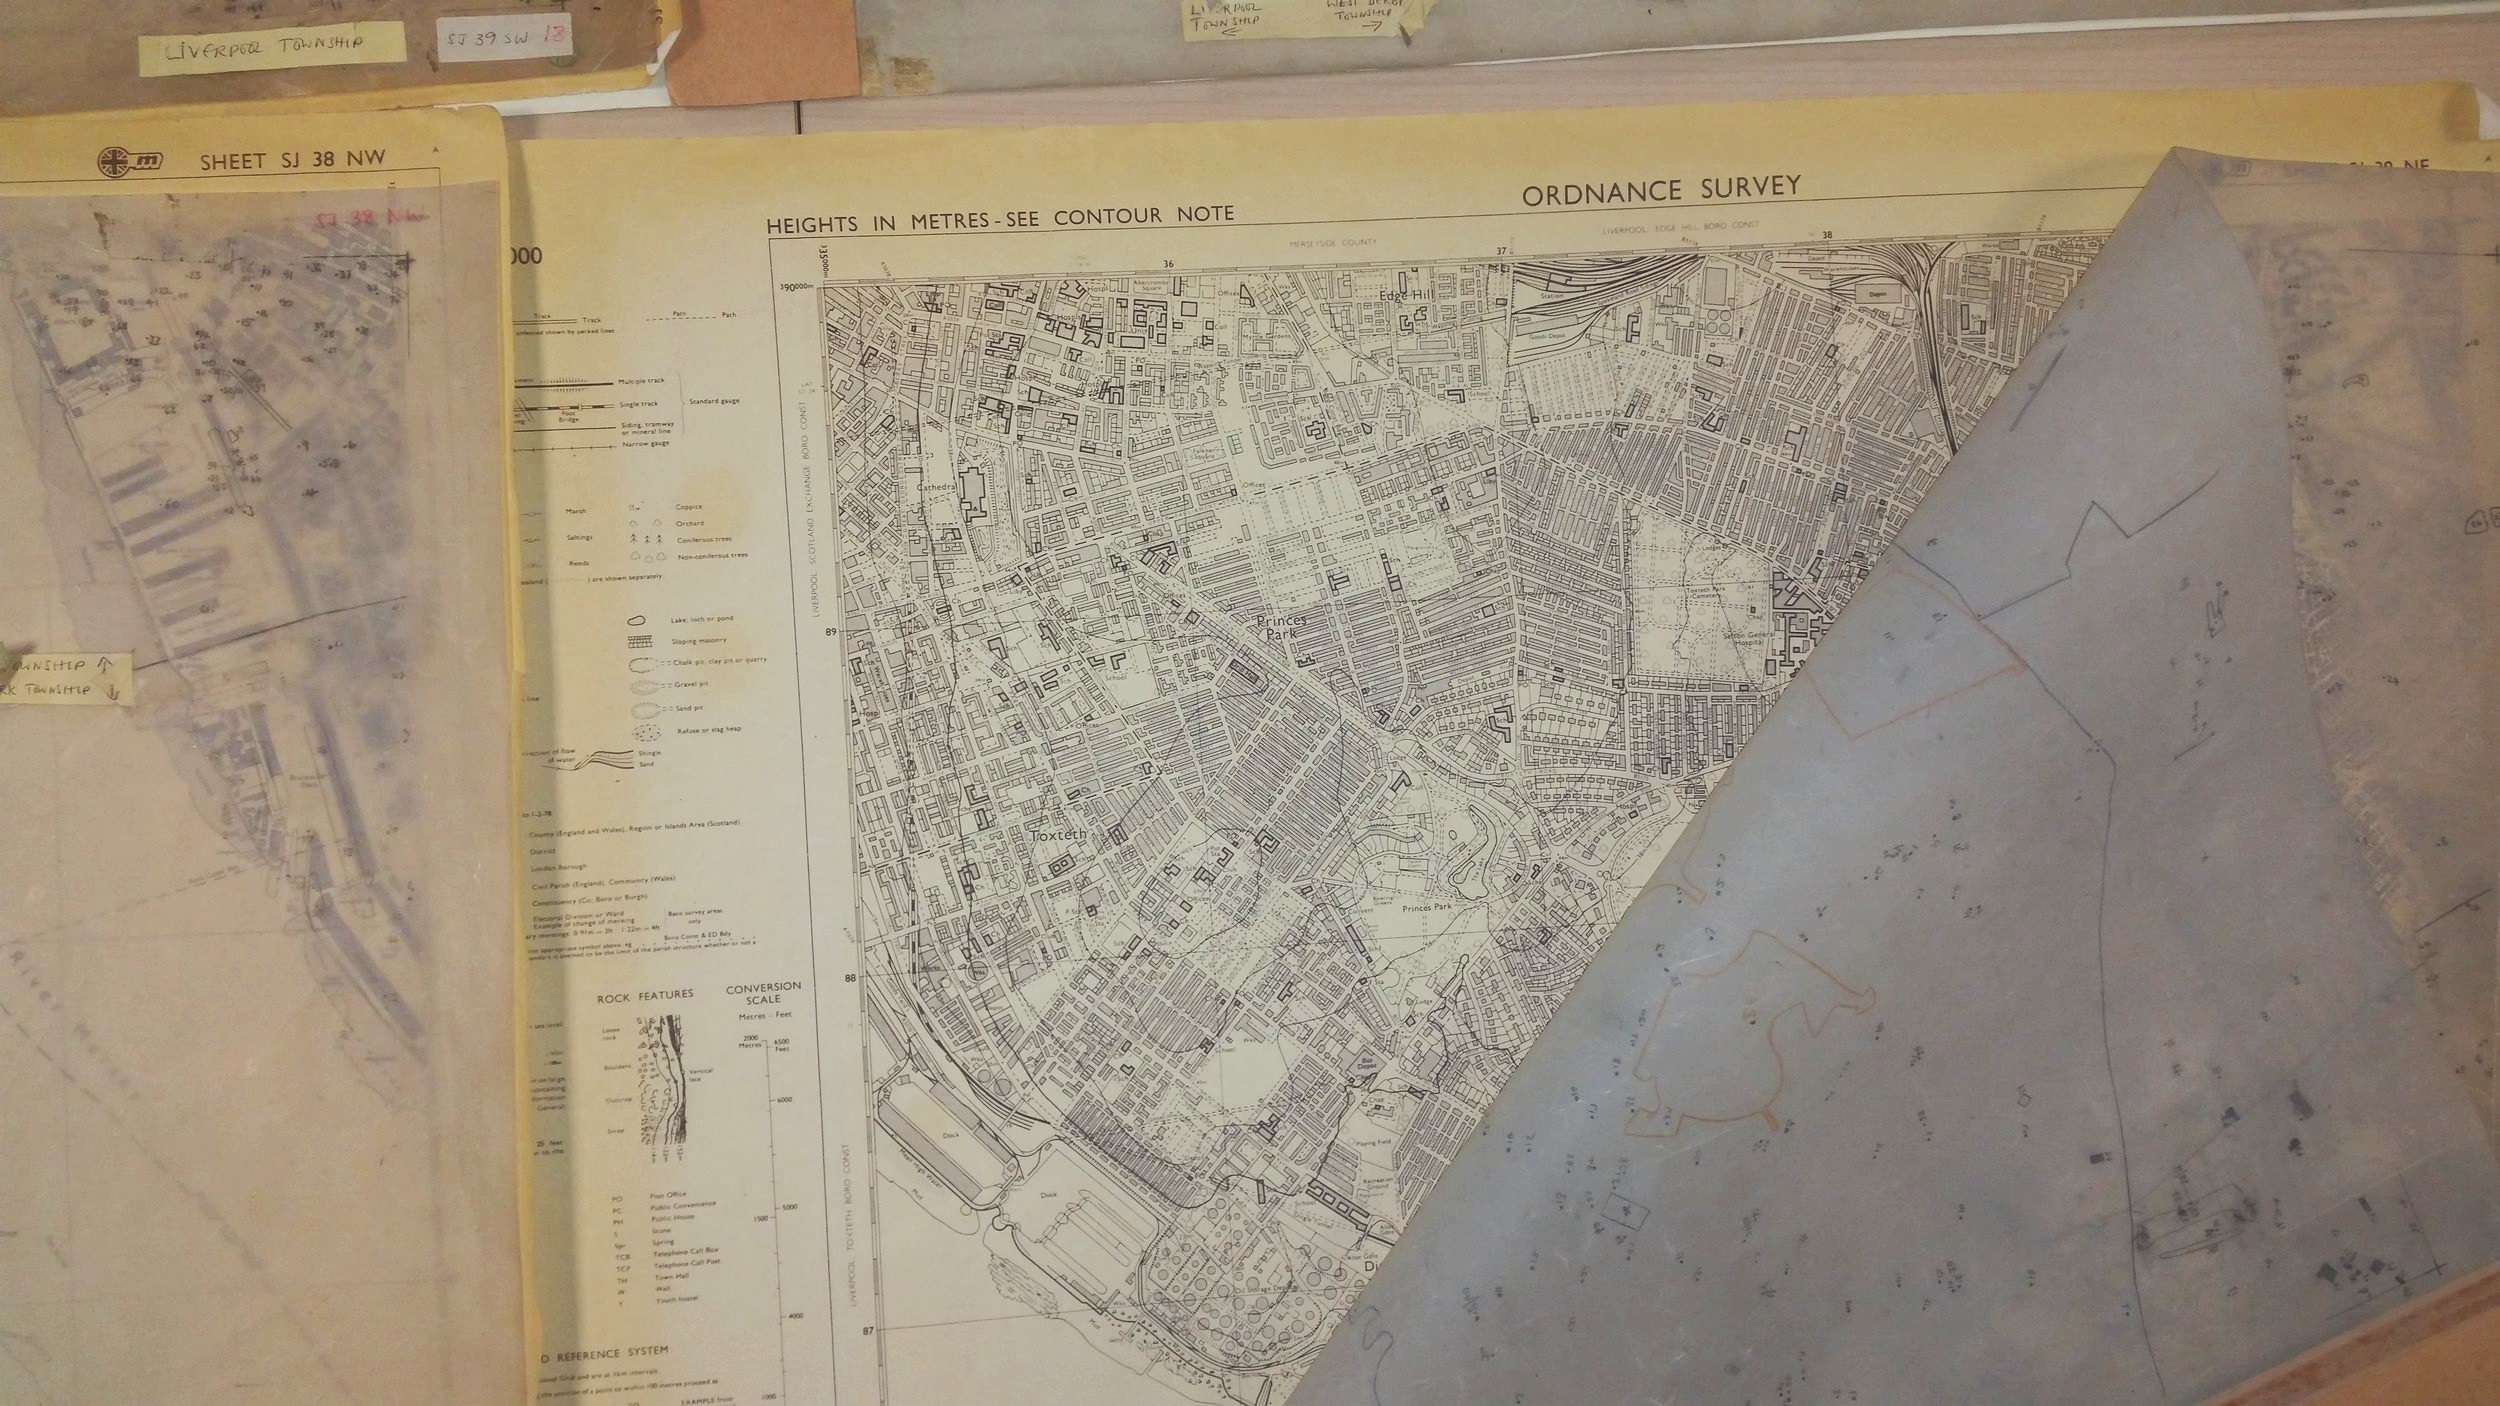 A2 Ordinance Survey Map of a section of Liverpool circa 1980's